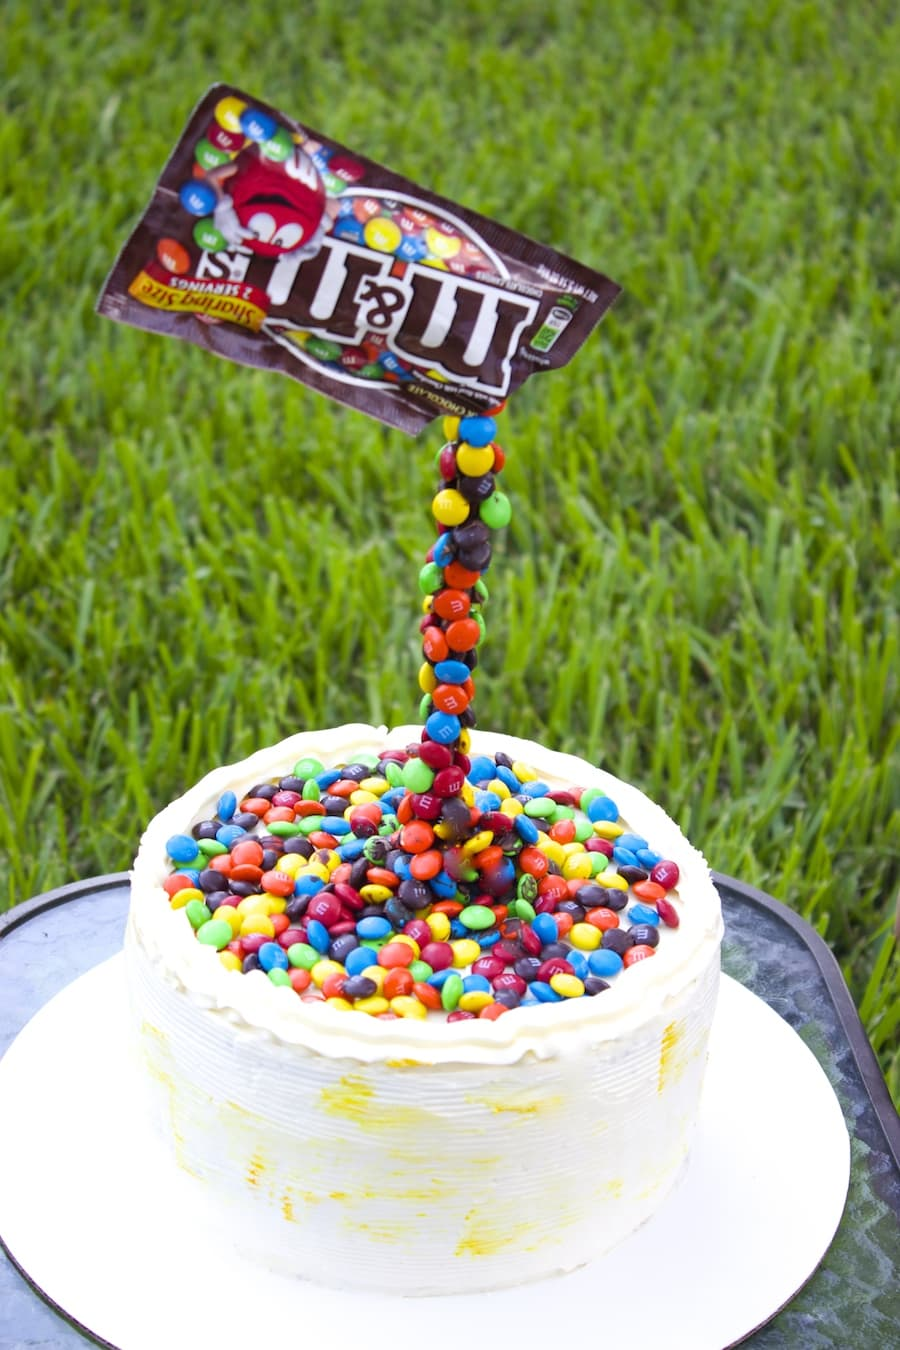 M&M Illusion cake Swiss meringue buttercream Frosting,gravity defining cake, part cake, m&m cake, kids birthday cake ideas, kids birthday cake, illusion cakes